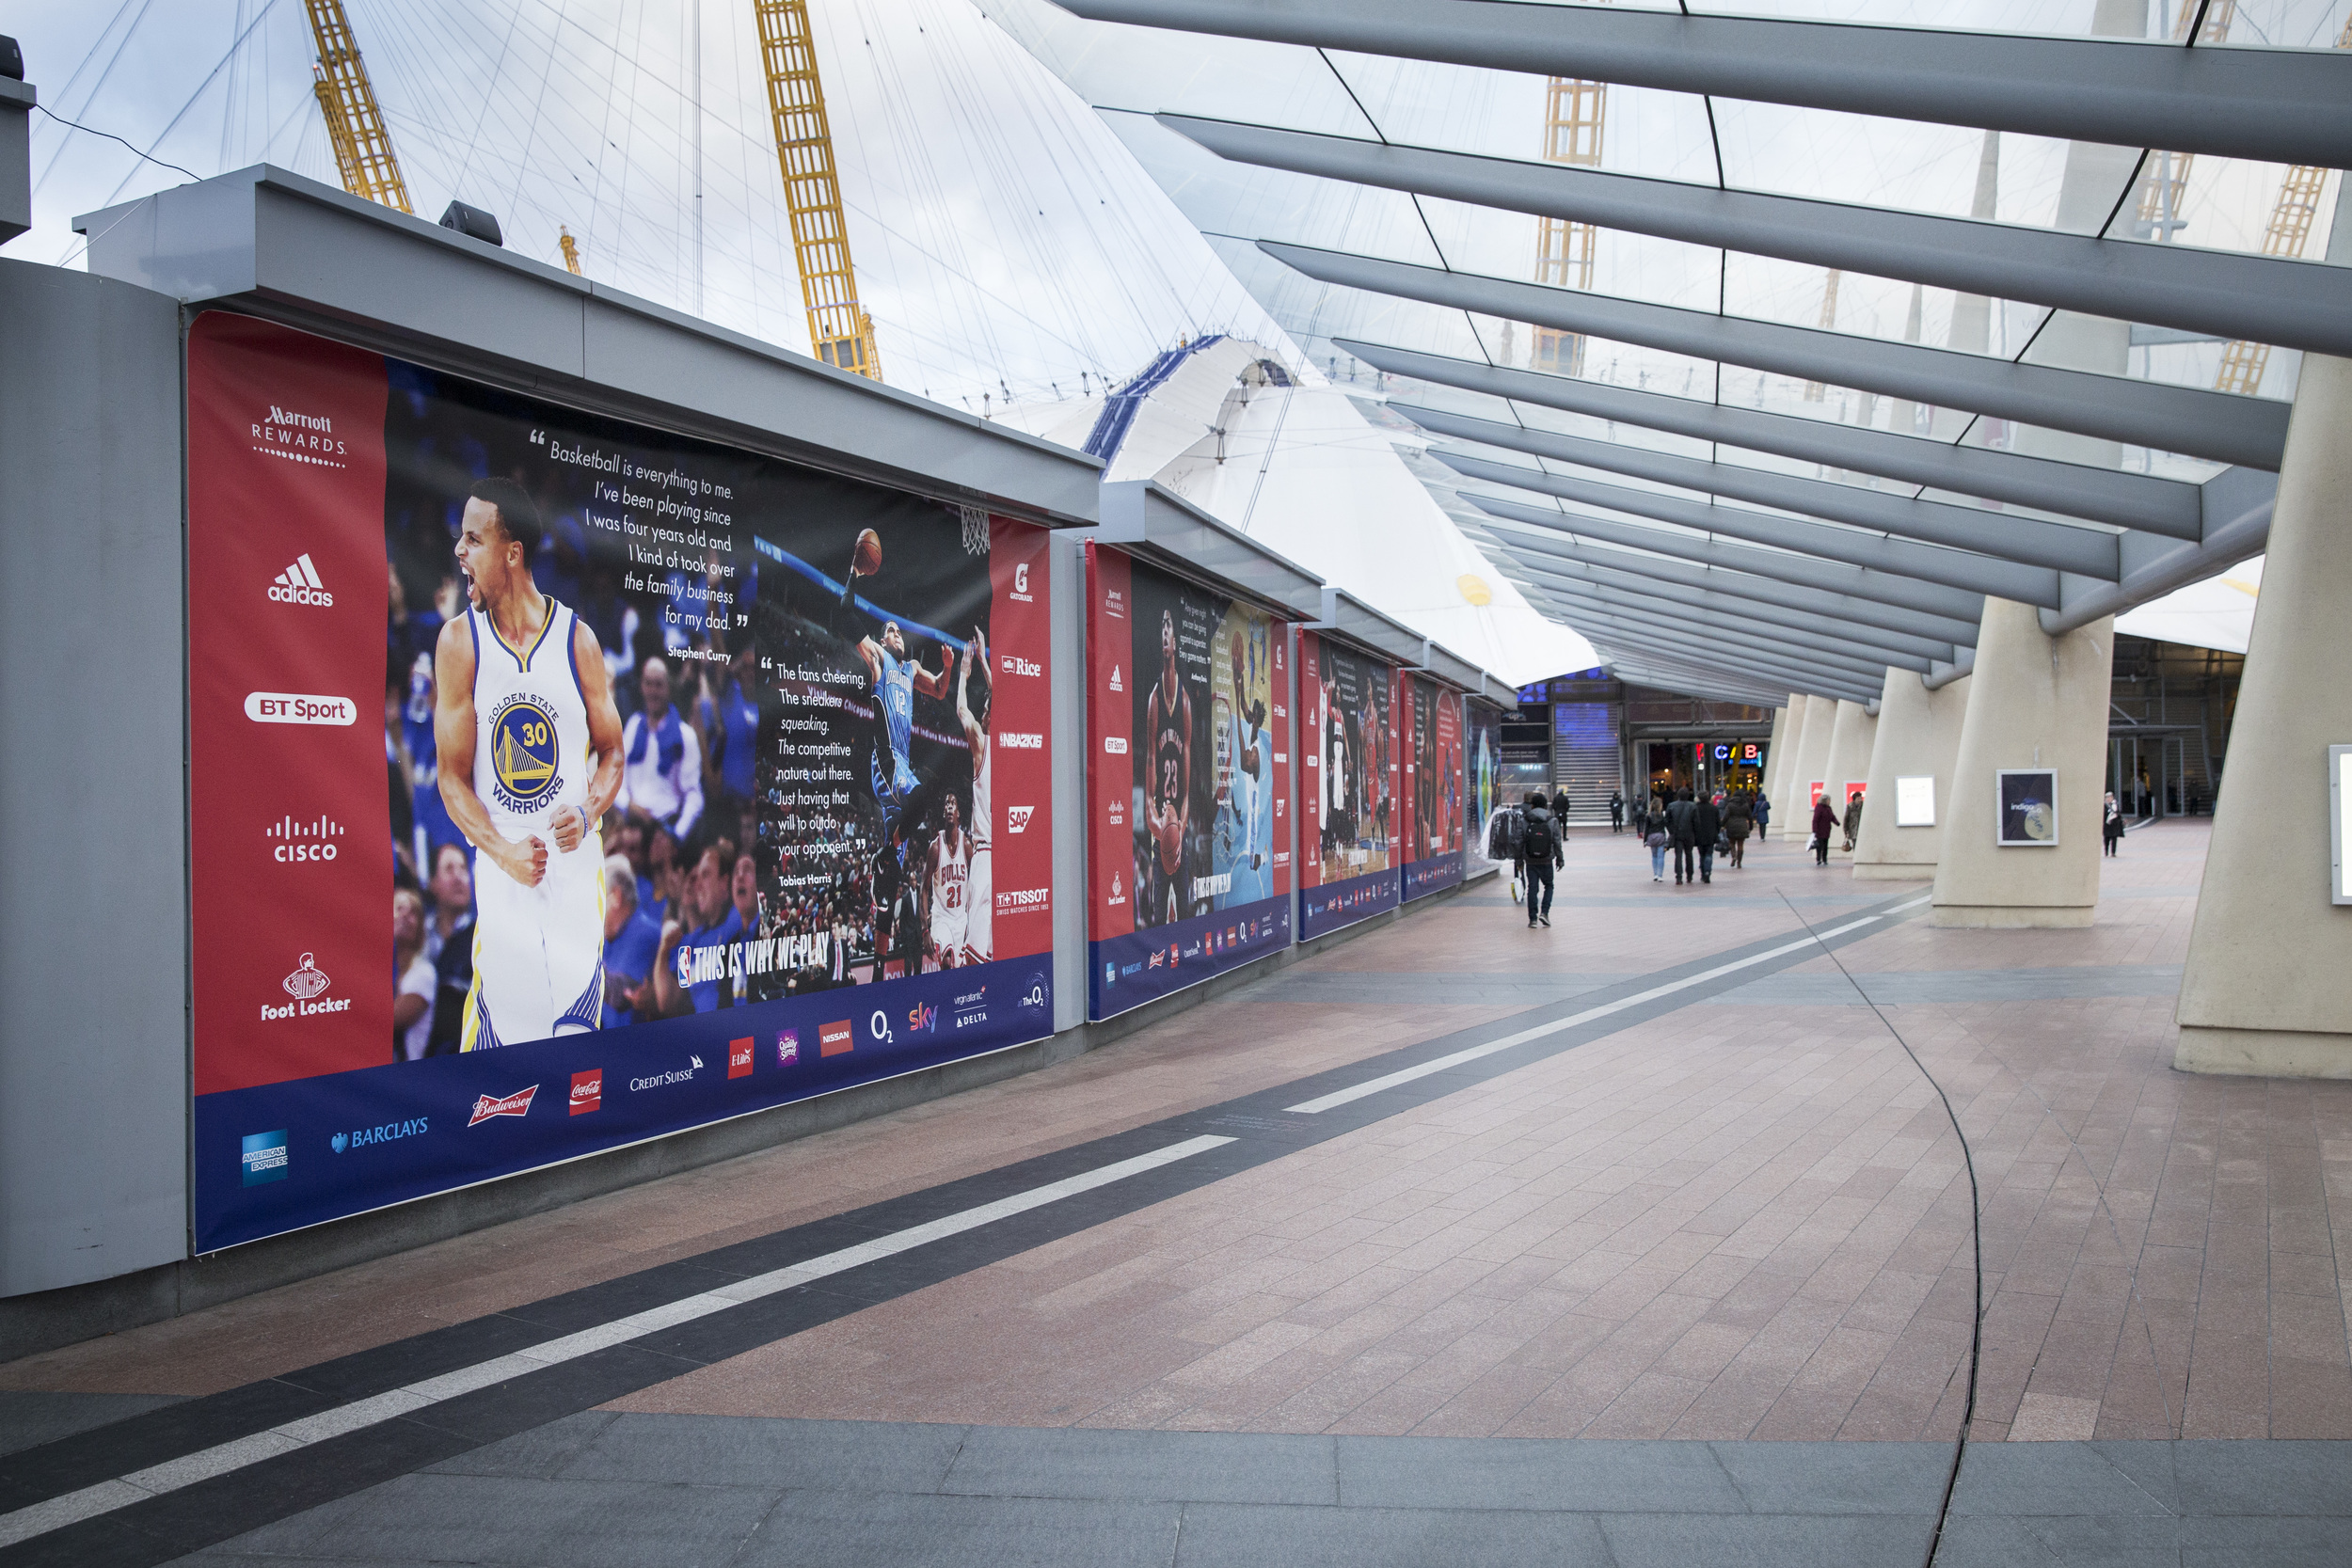 NBA_02_SIGNAGE_AND_DECOR11.JPG